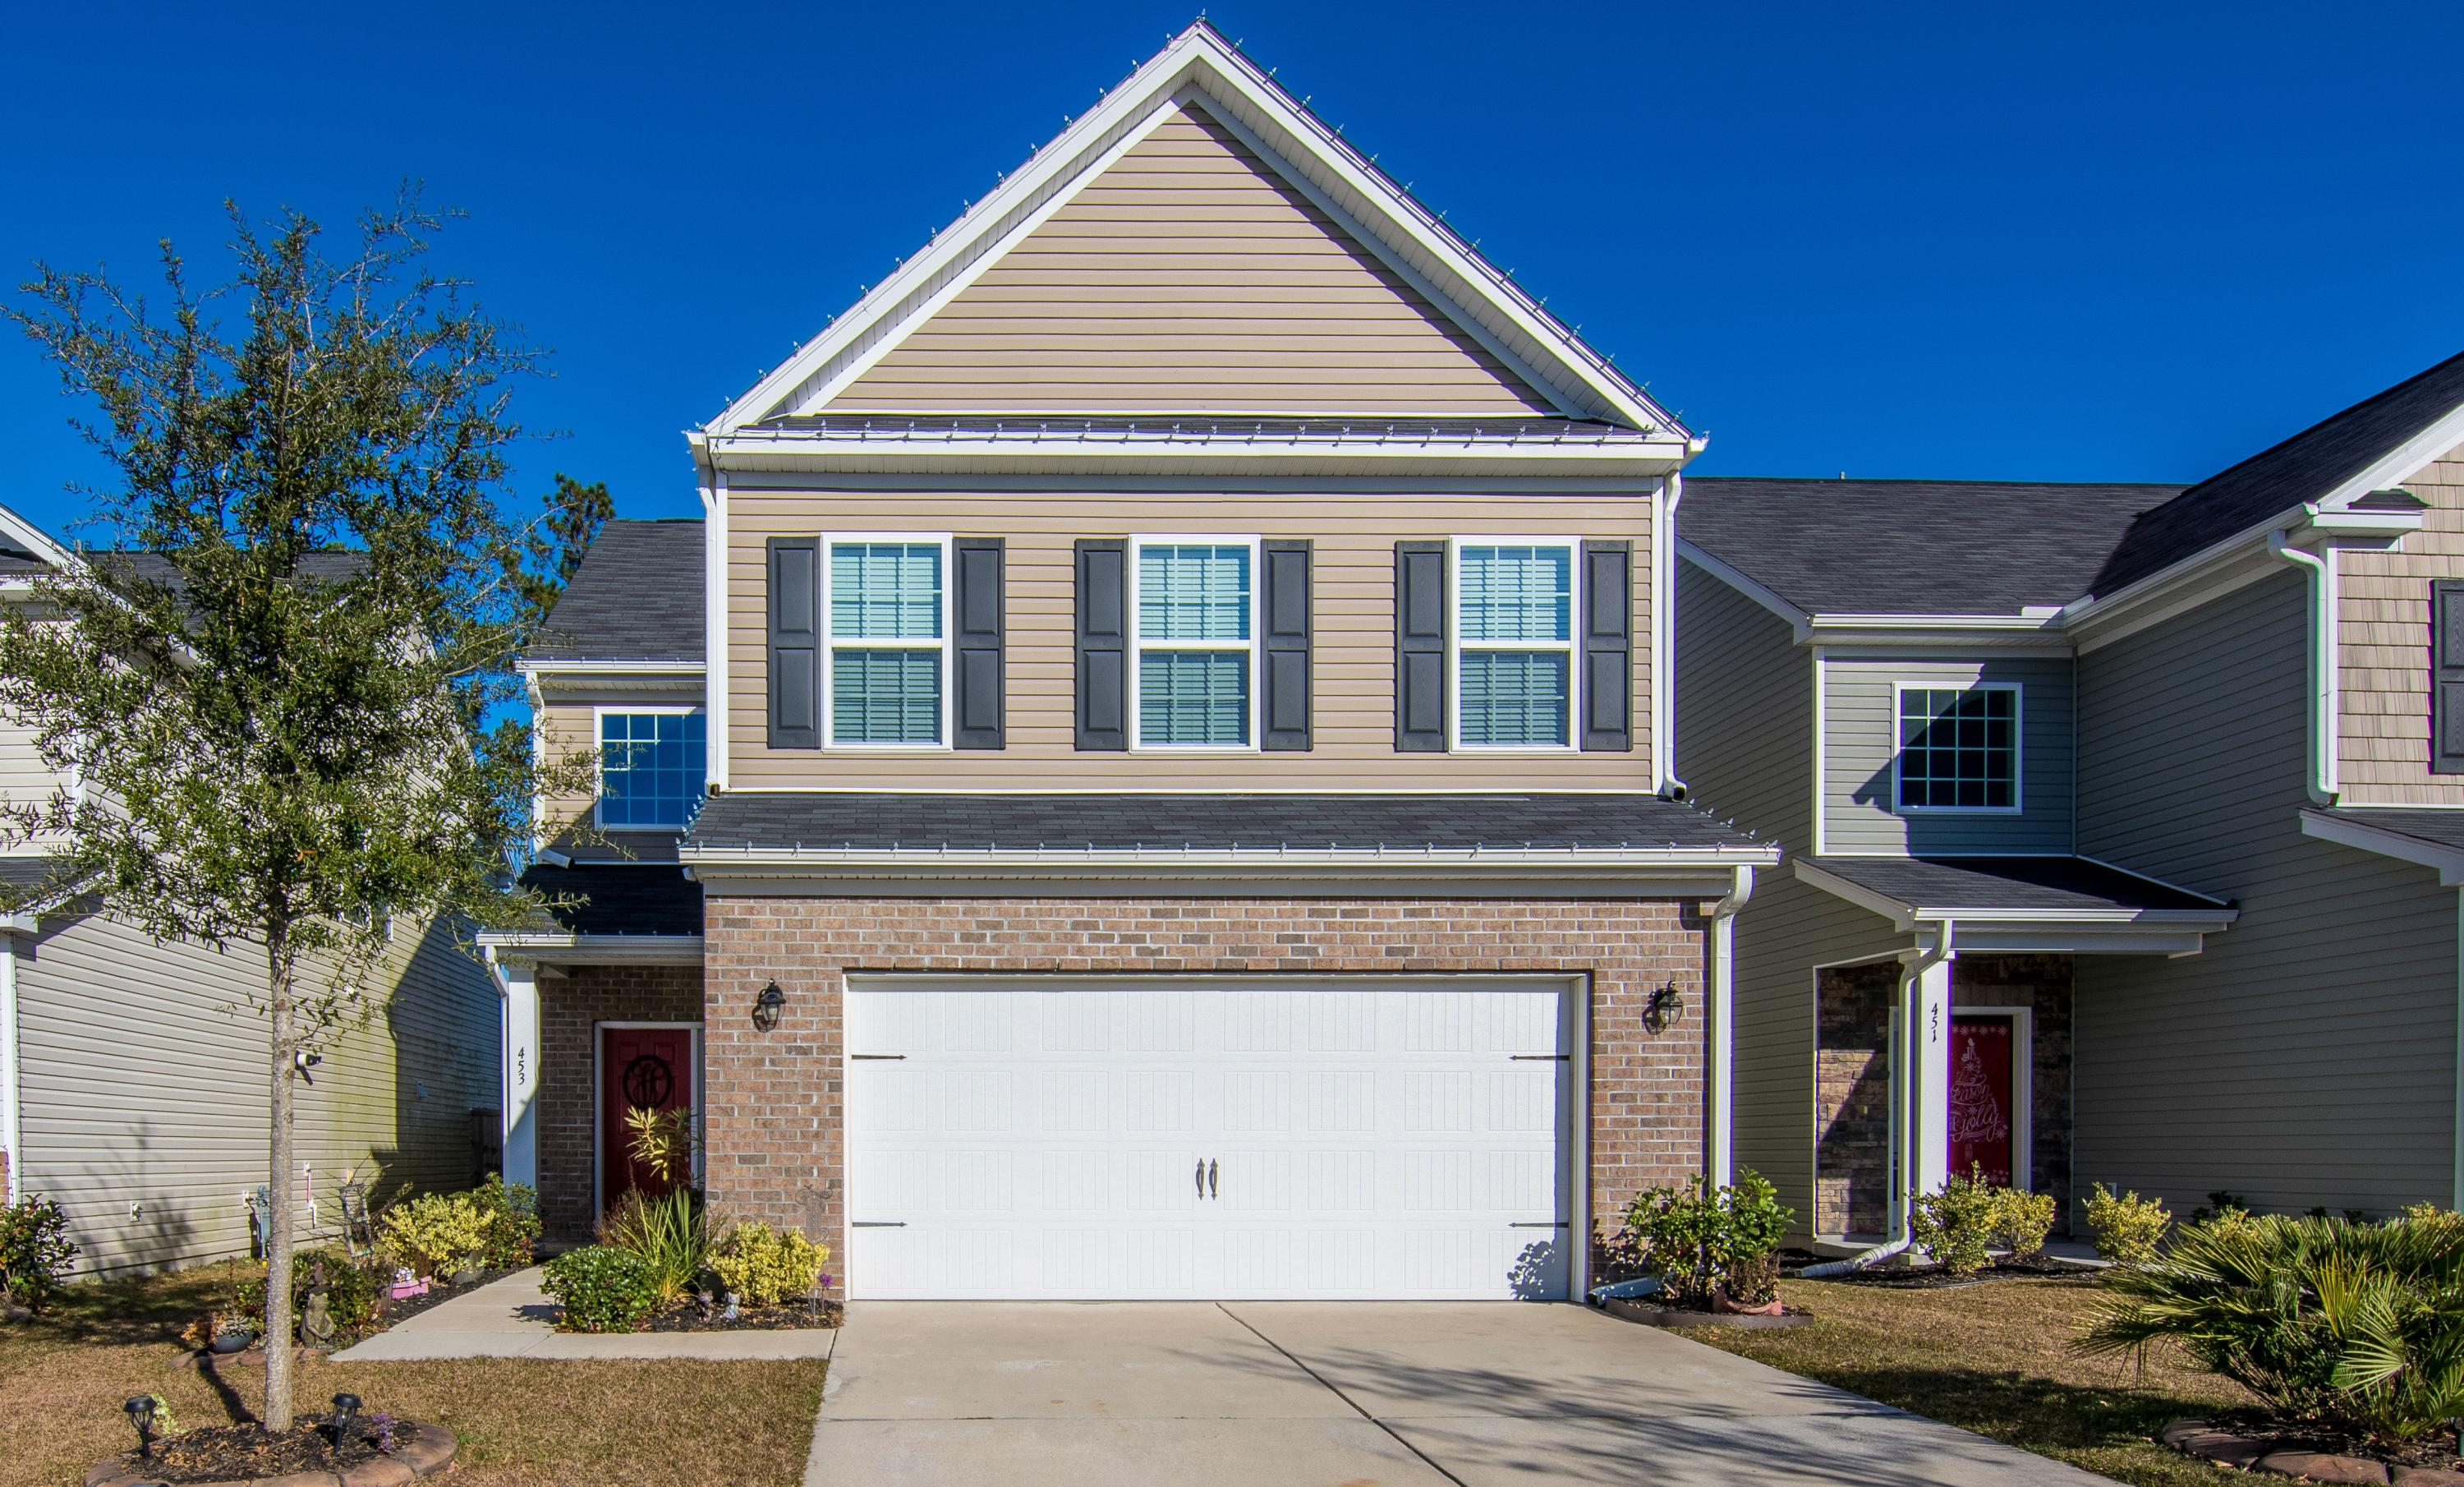 453 Whispering Breeze Lane, Summerville,  29486